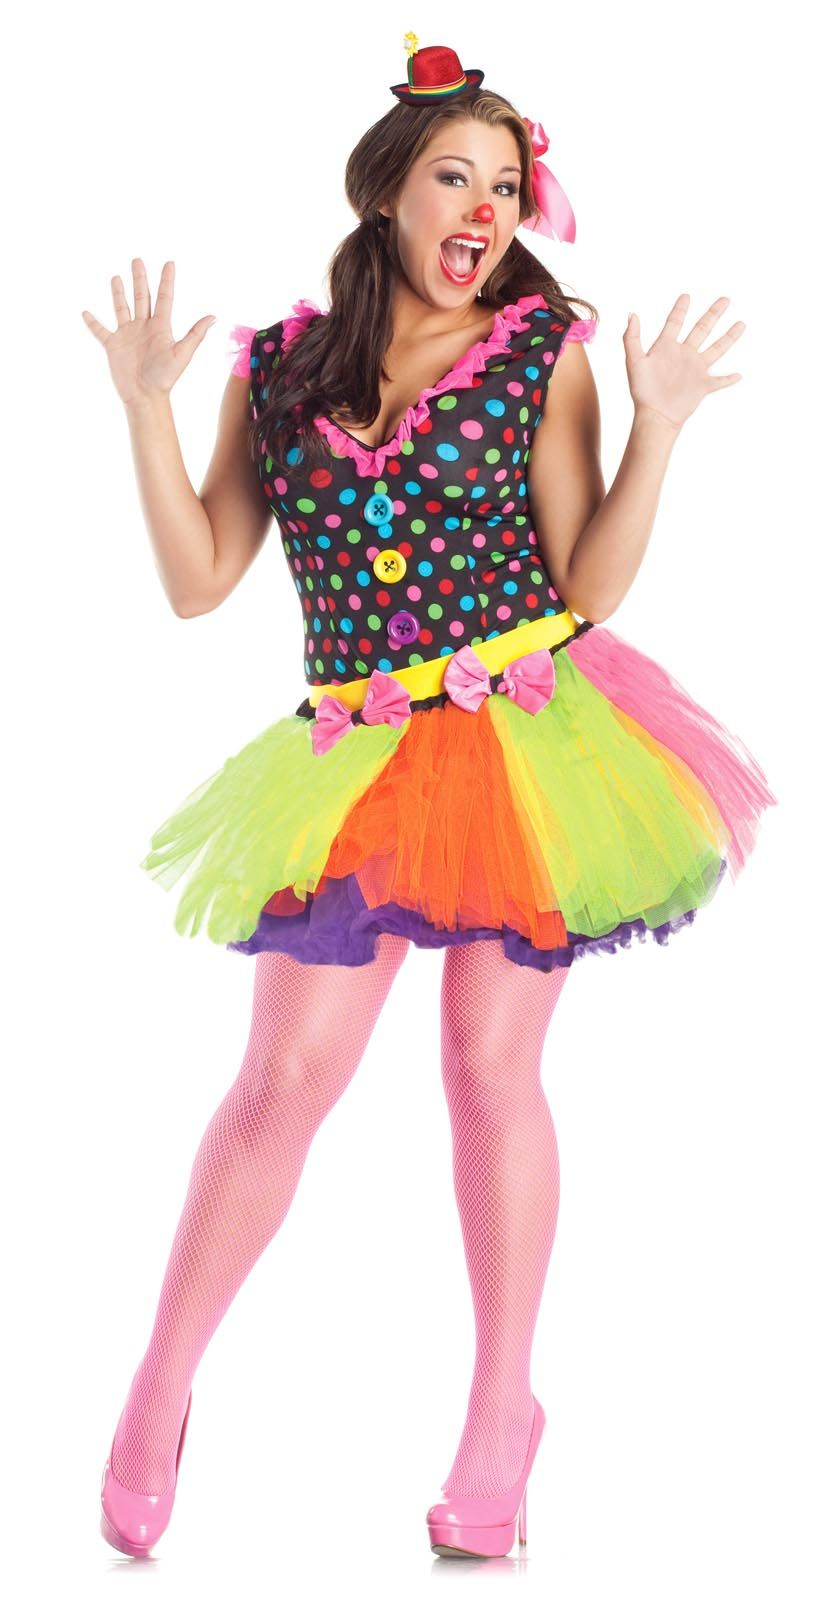 Cute Clown Costume DRESS Skirt Polka Dot Adult Women Plus